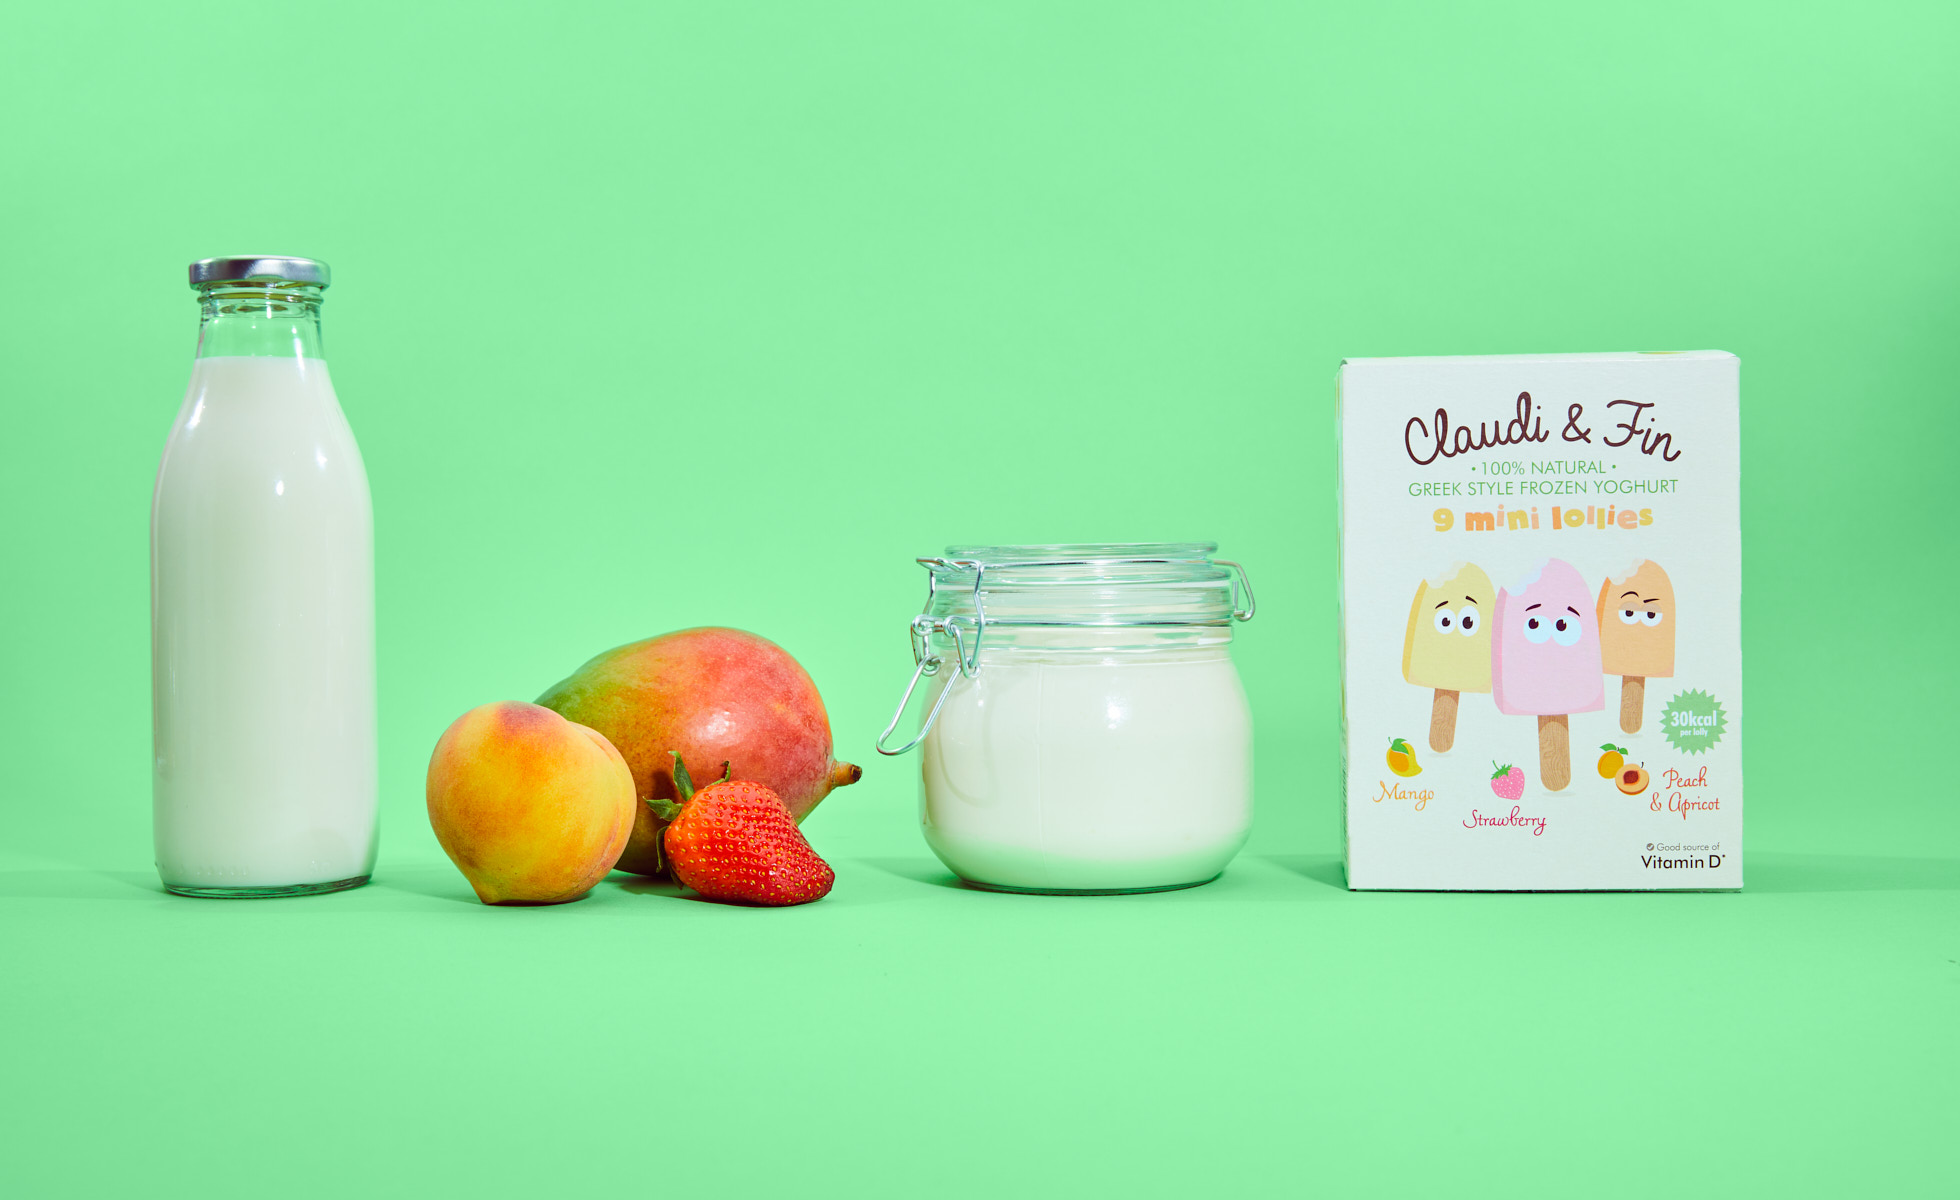 Milk fruit yoghurt and a box of lollies against a green background